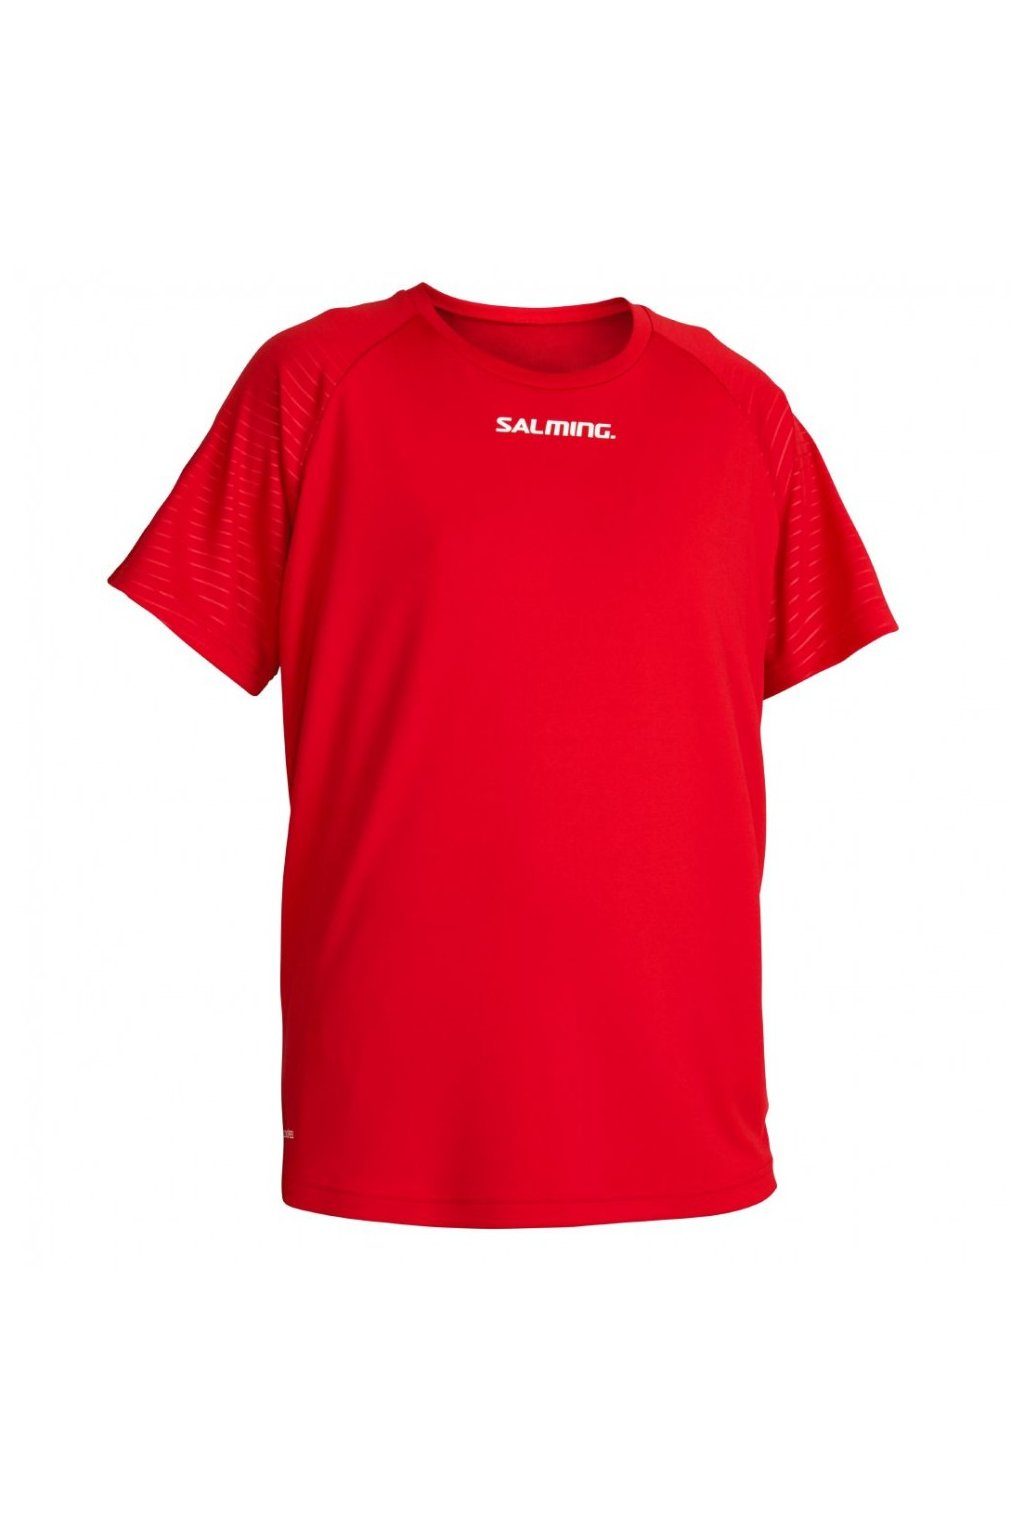 salming granite game tee men (1)